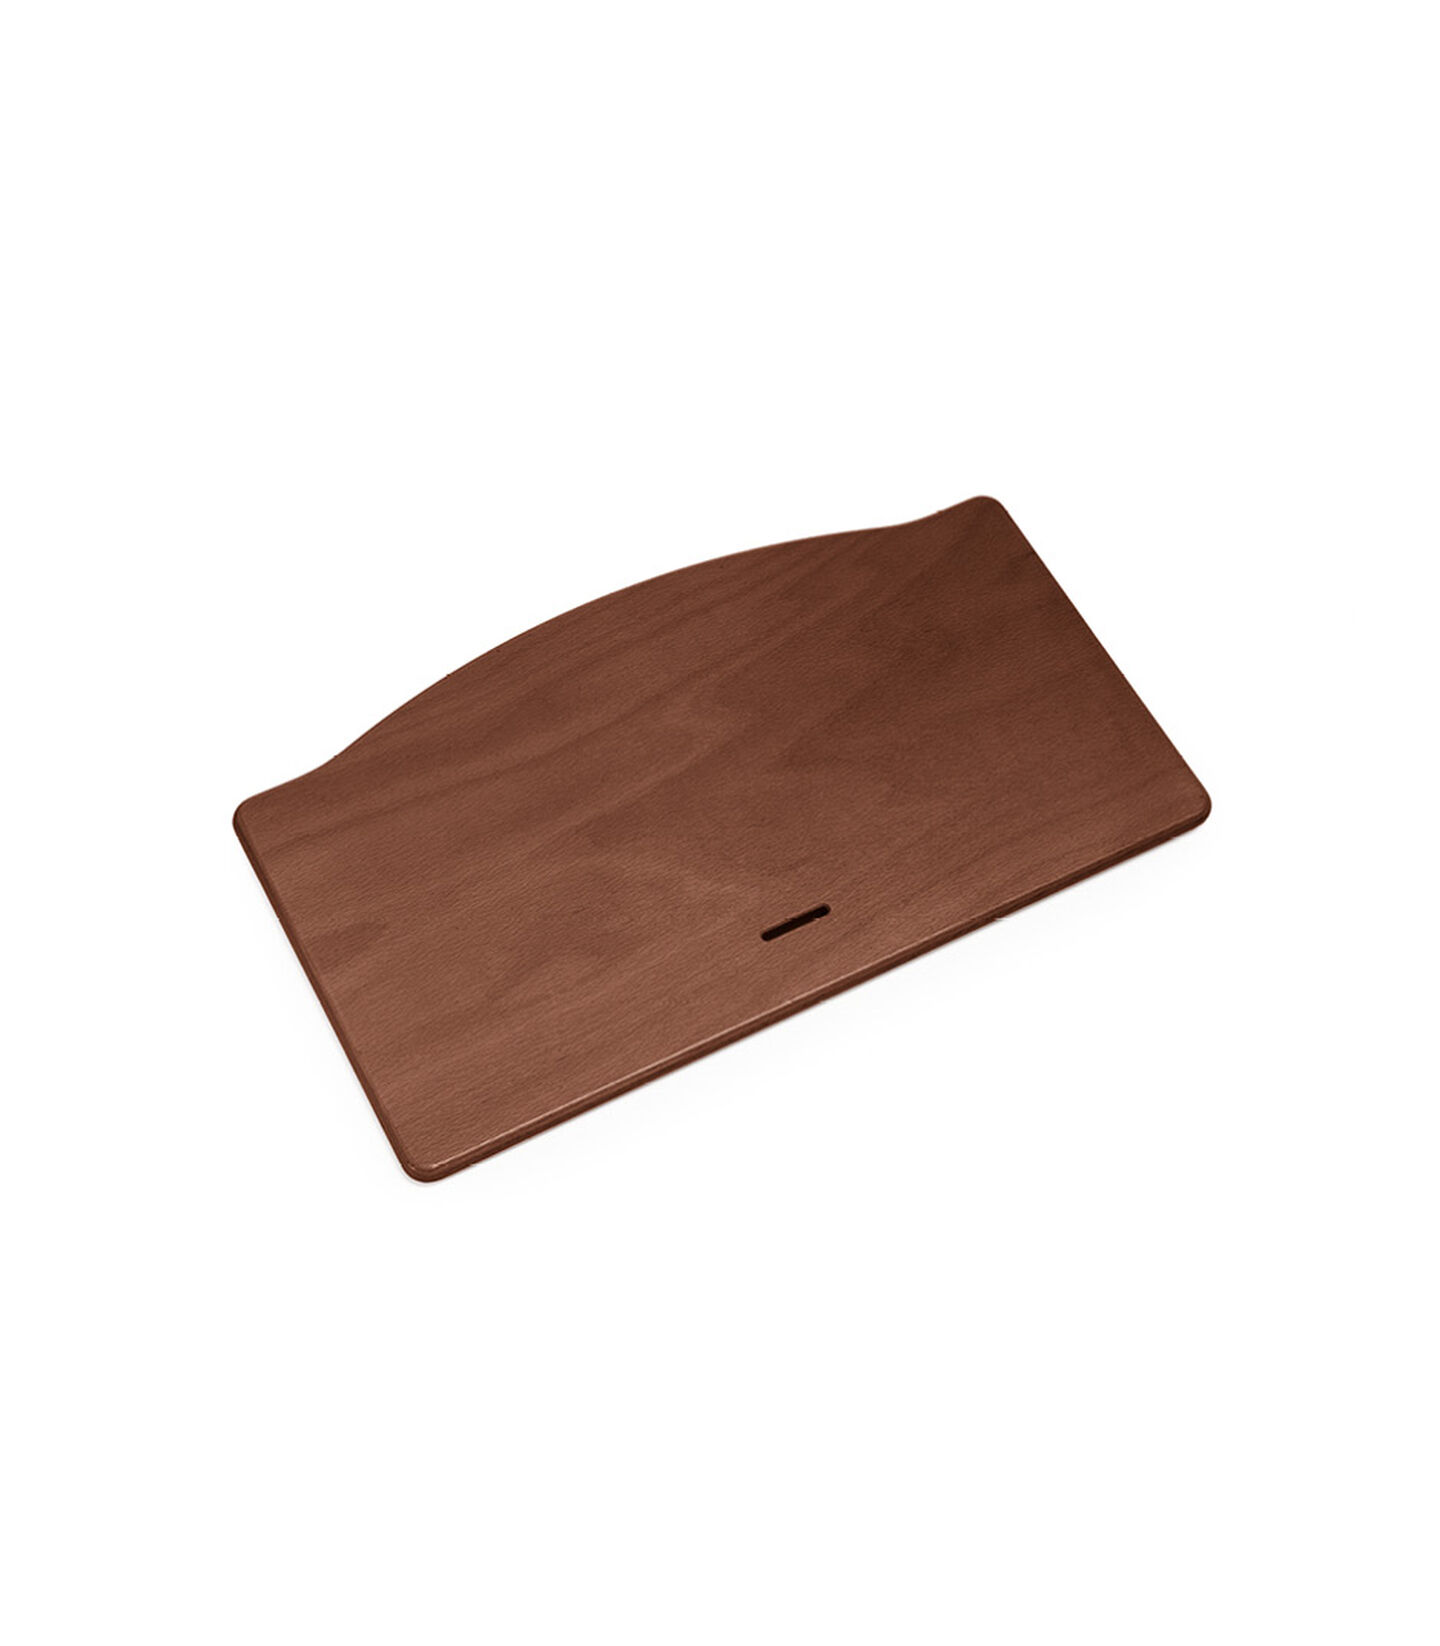 108806 Tripp Trapp Seat plate Walnut. Spare part. view 2